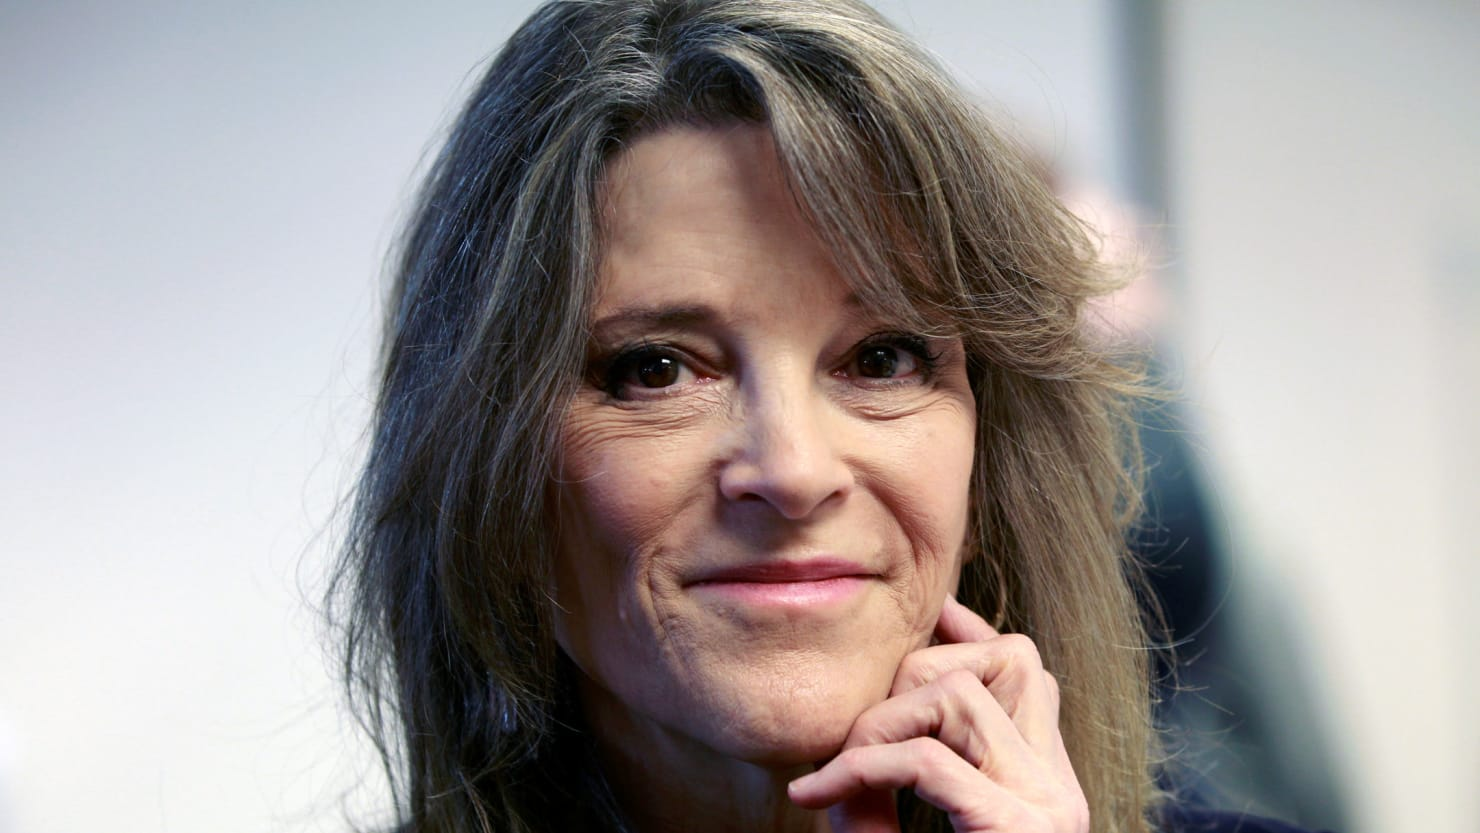 2020 Candidate Marianne Williamson: Vaccine Mandates Are 'Orwellian'